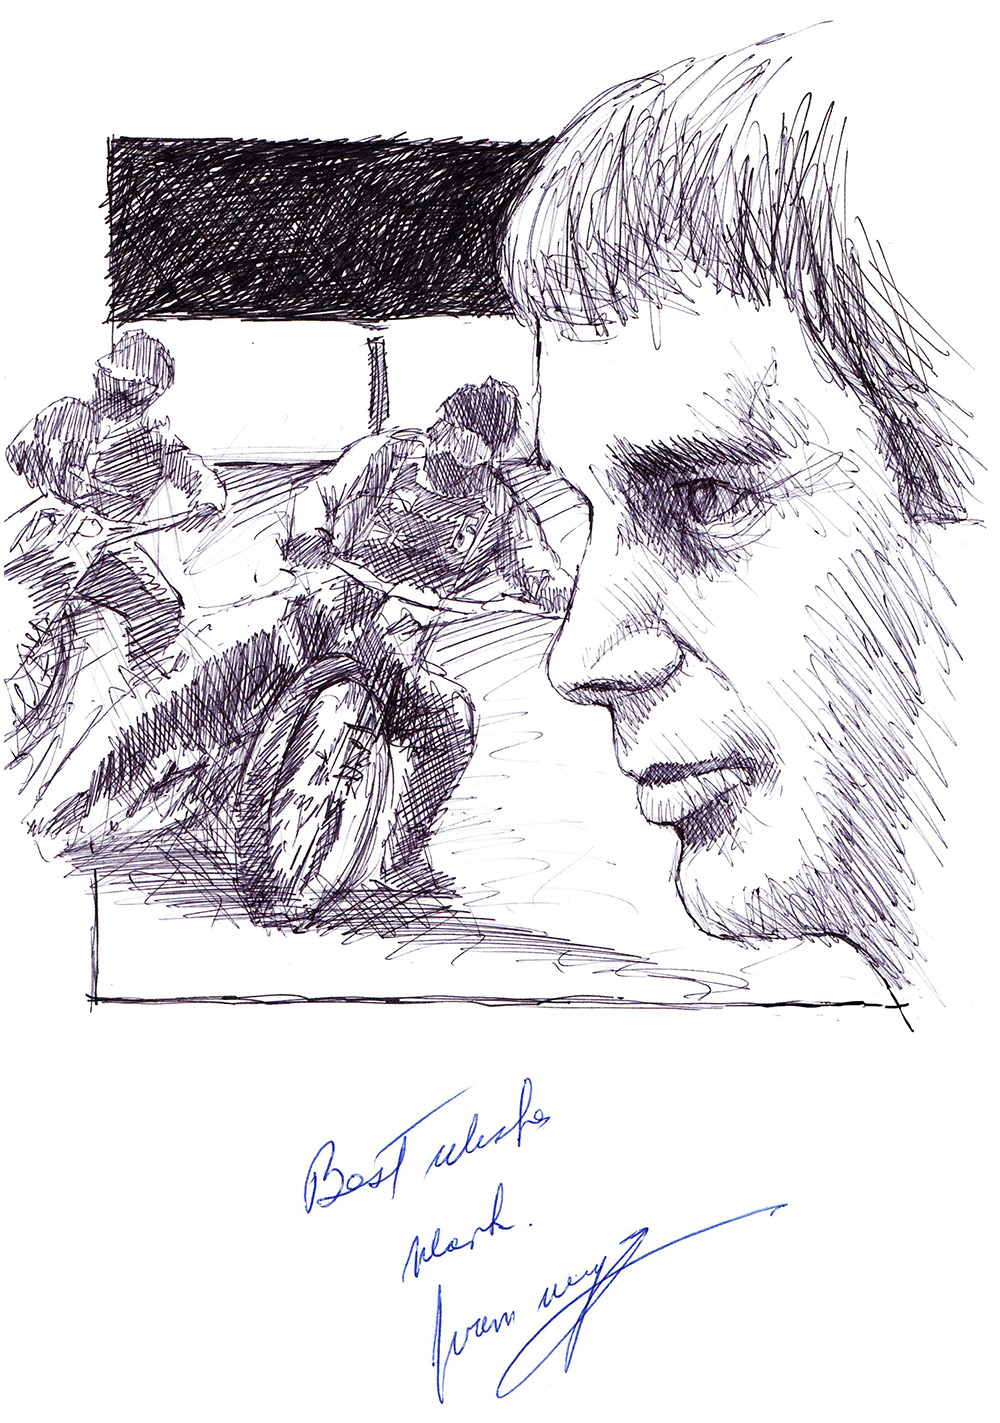 Autographed drawing of speedway racer Ivan Mauger